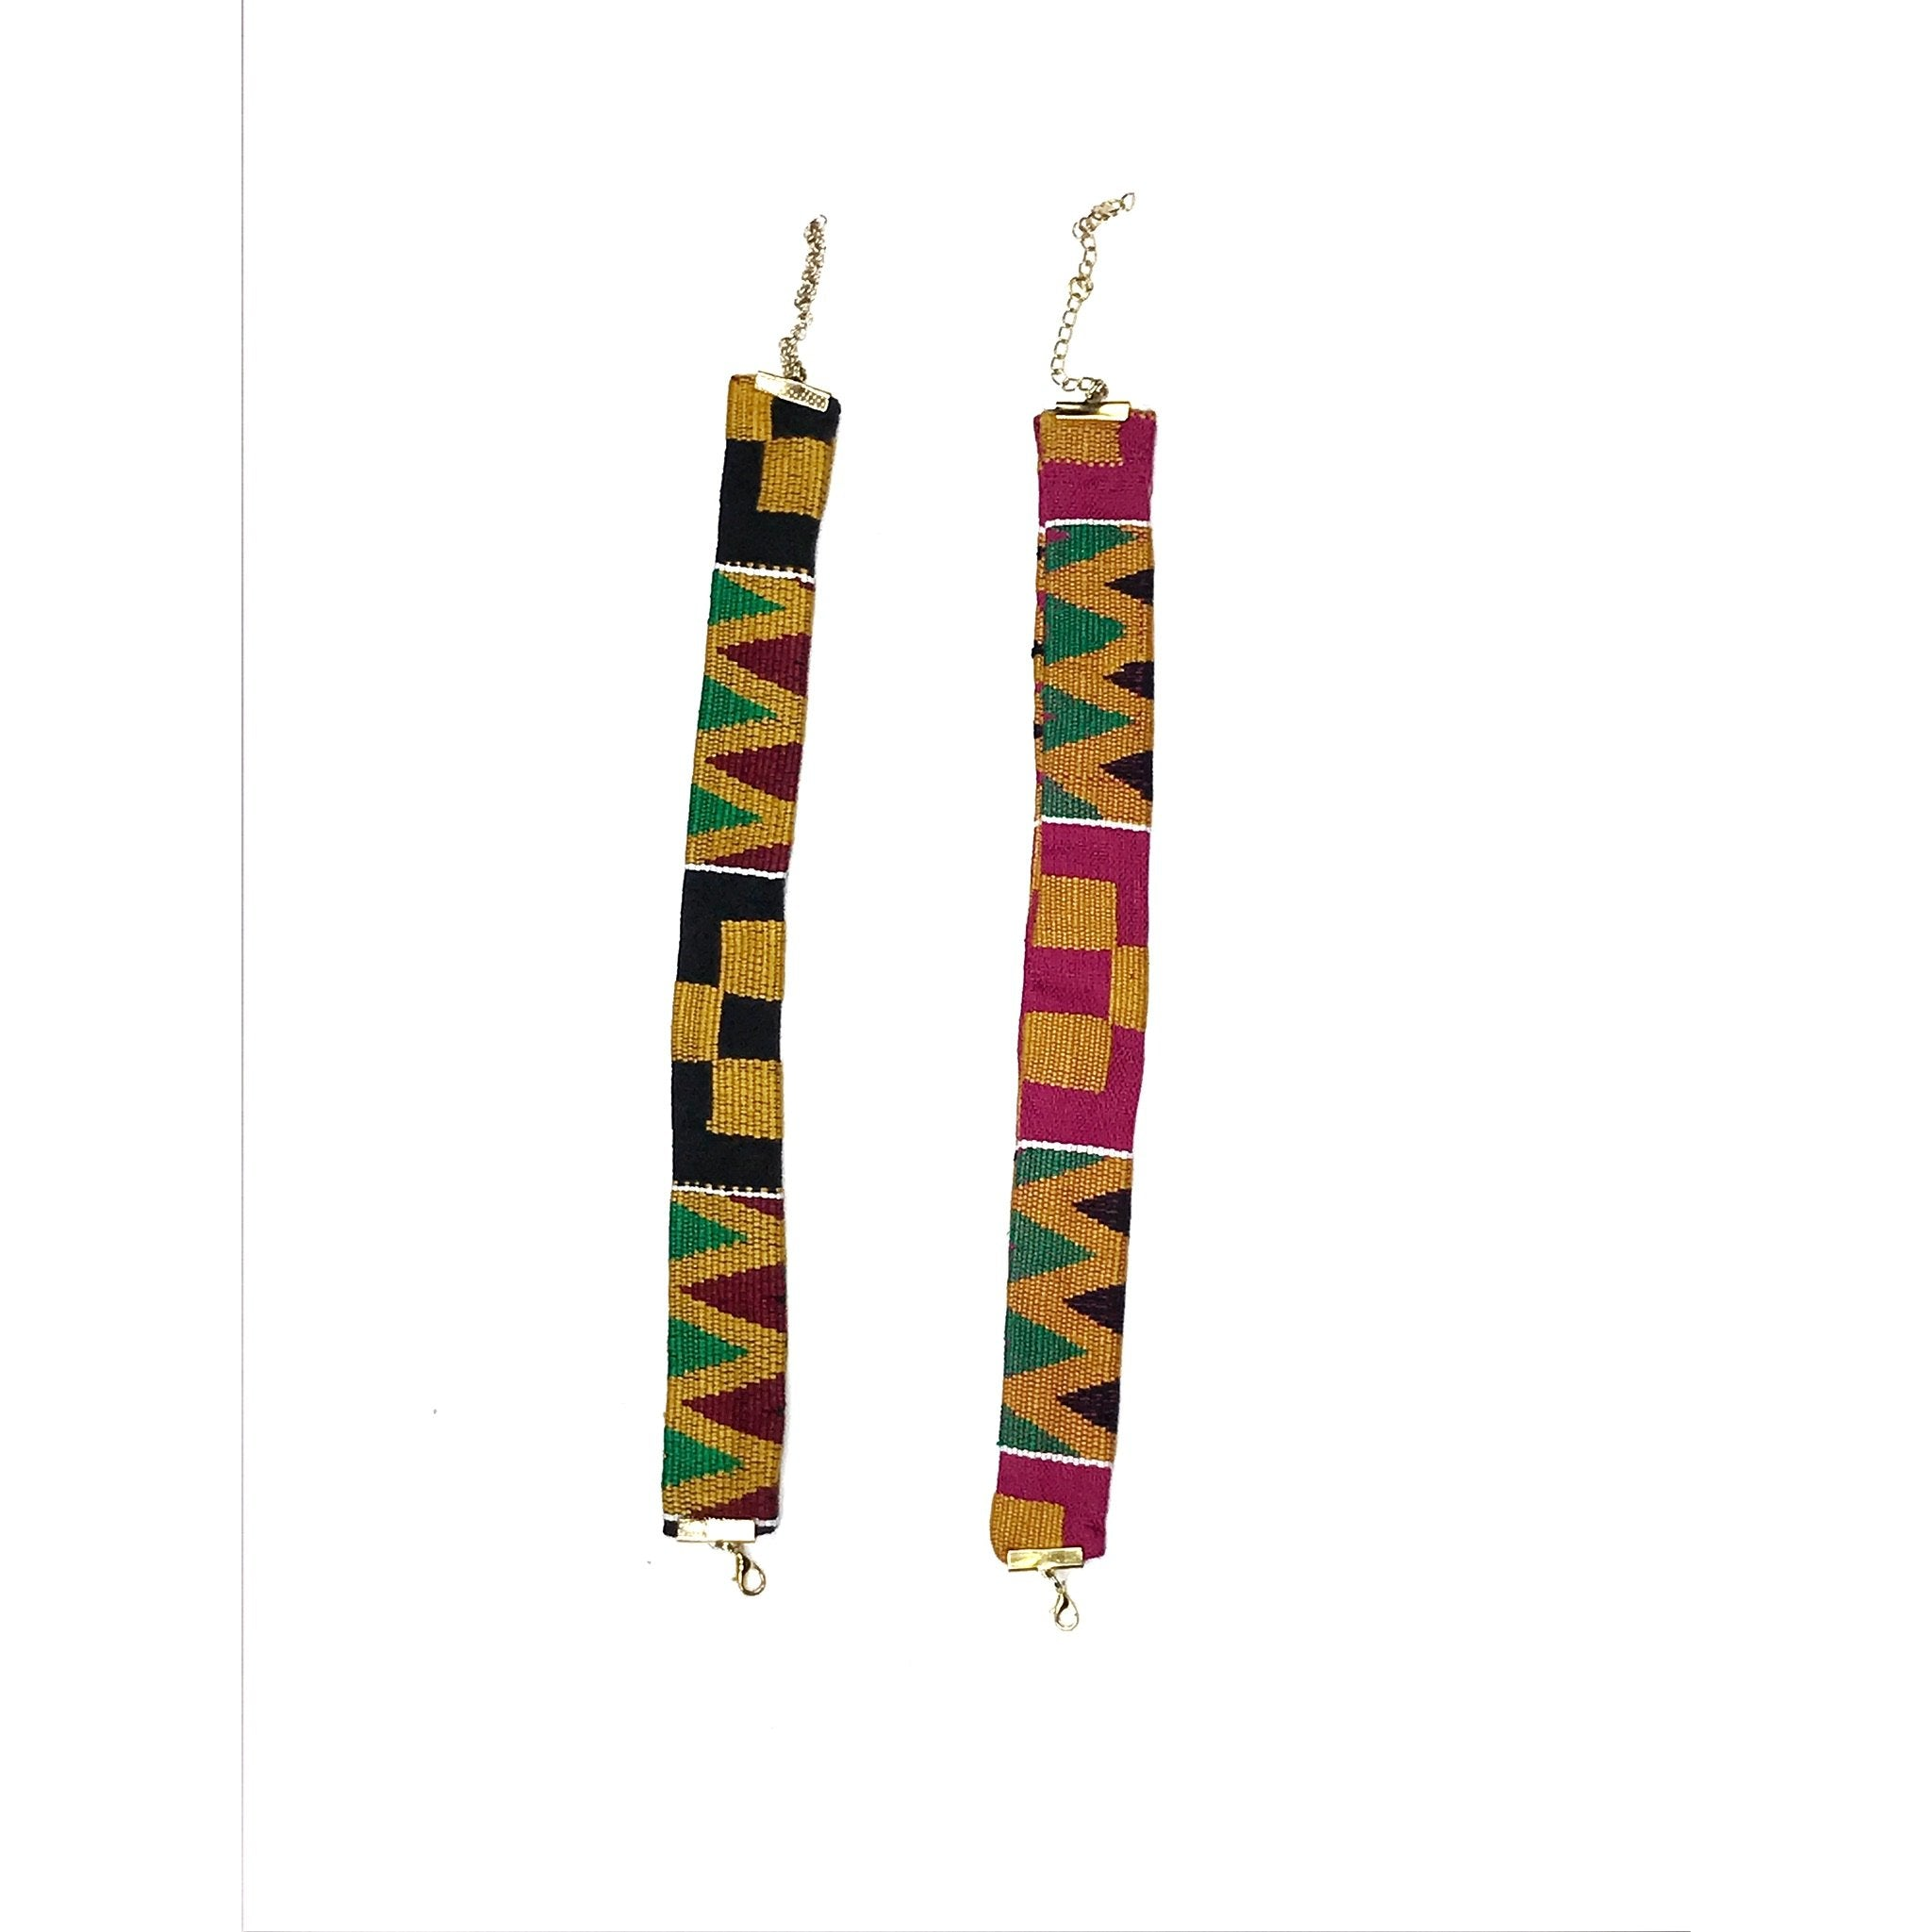 The Kente Cloth used in this design is called Amanfo. Made with Authentic Kente Cloth, each item is made with love + heritage.